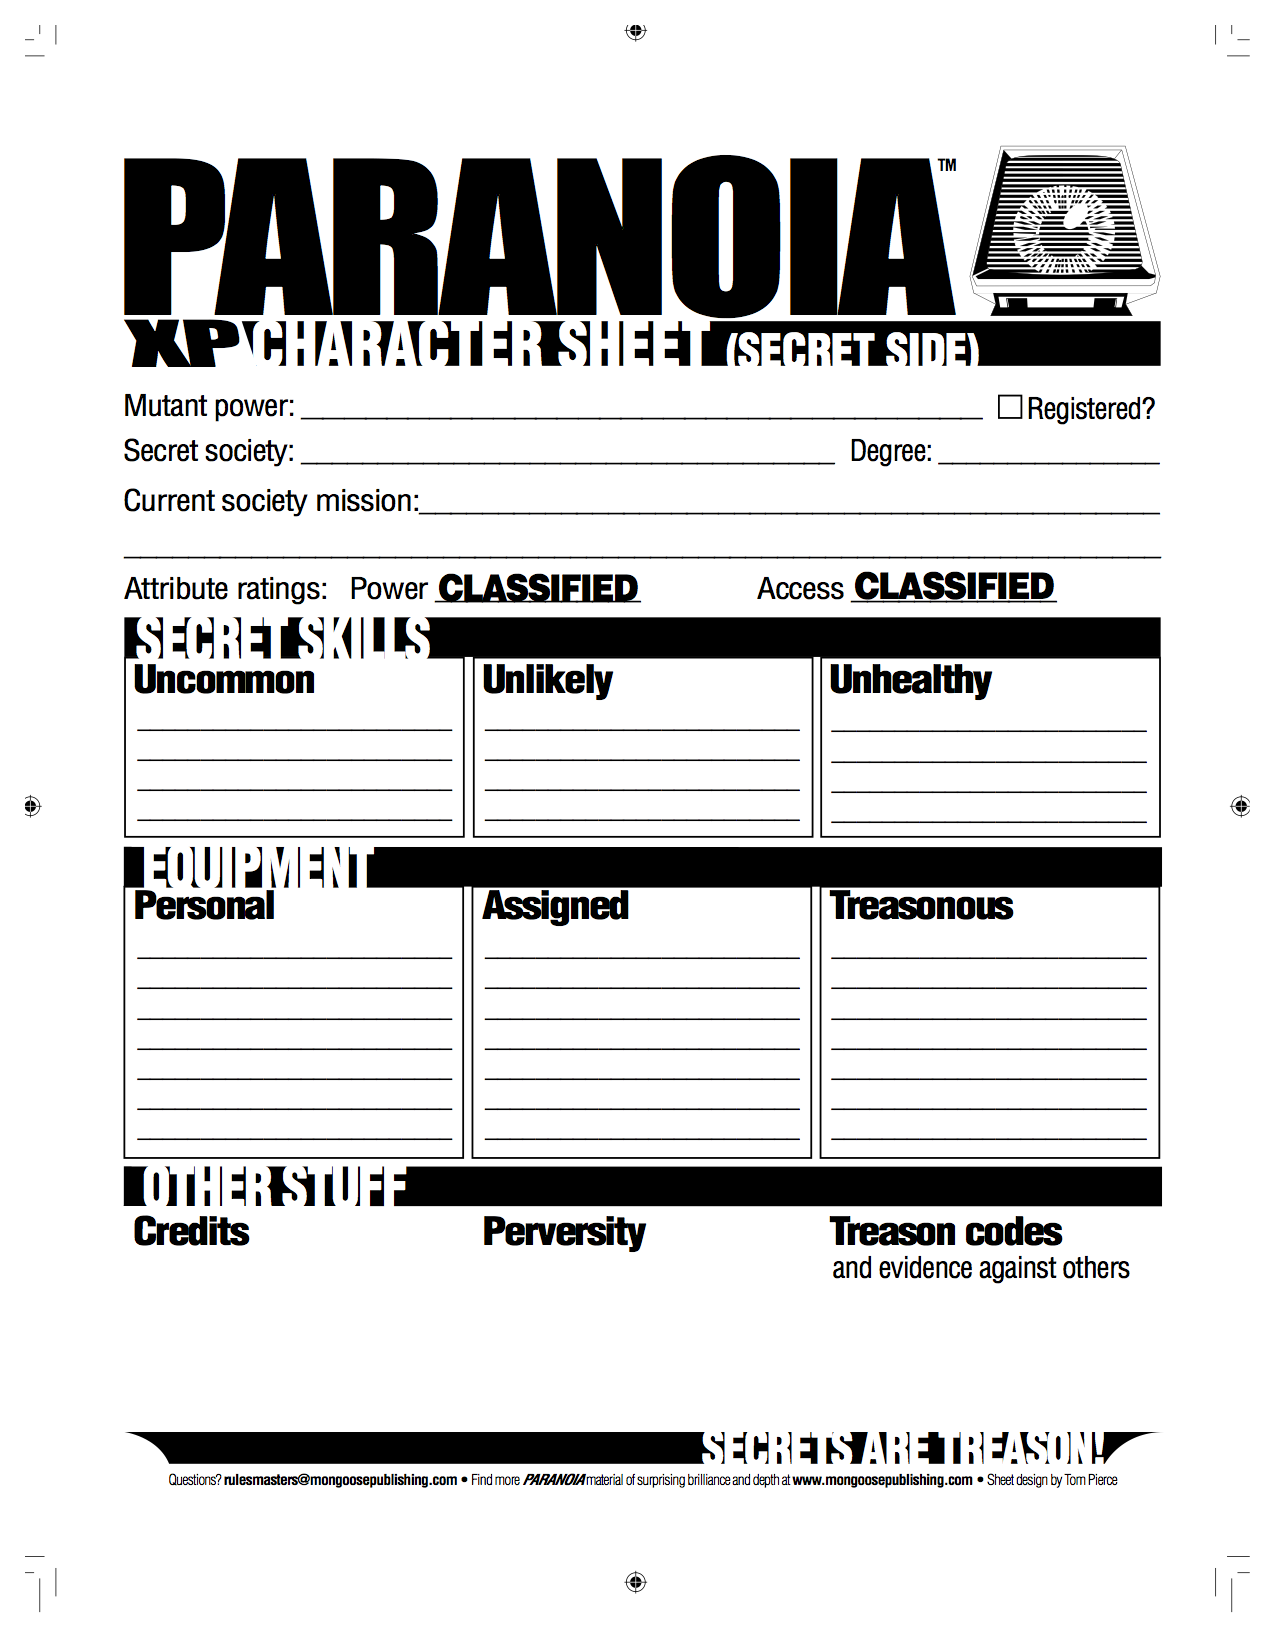 Paranoia xp   character sheet back